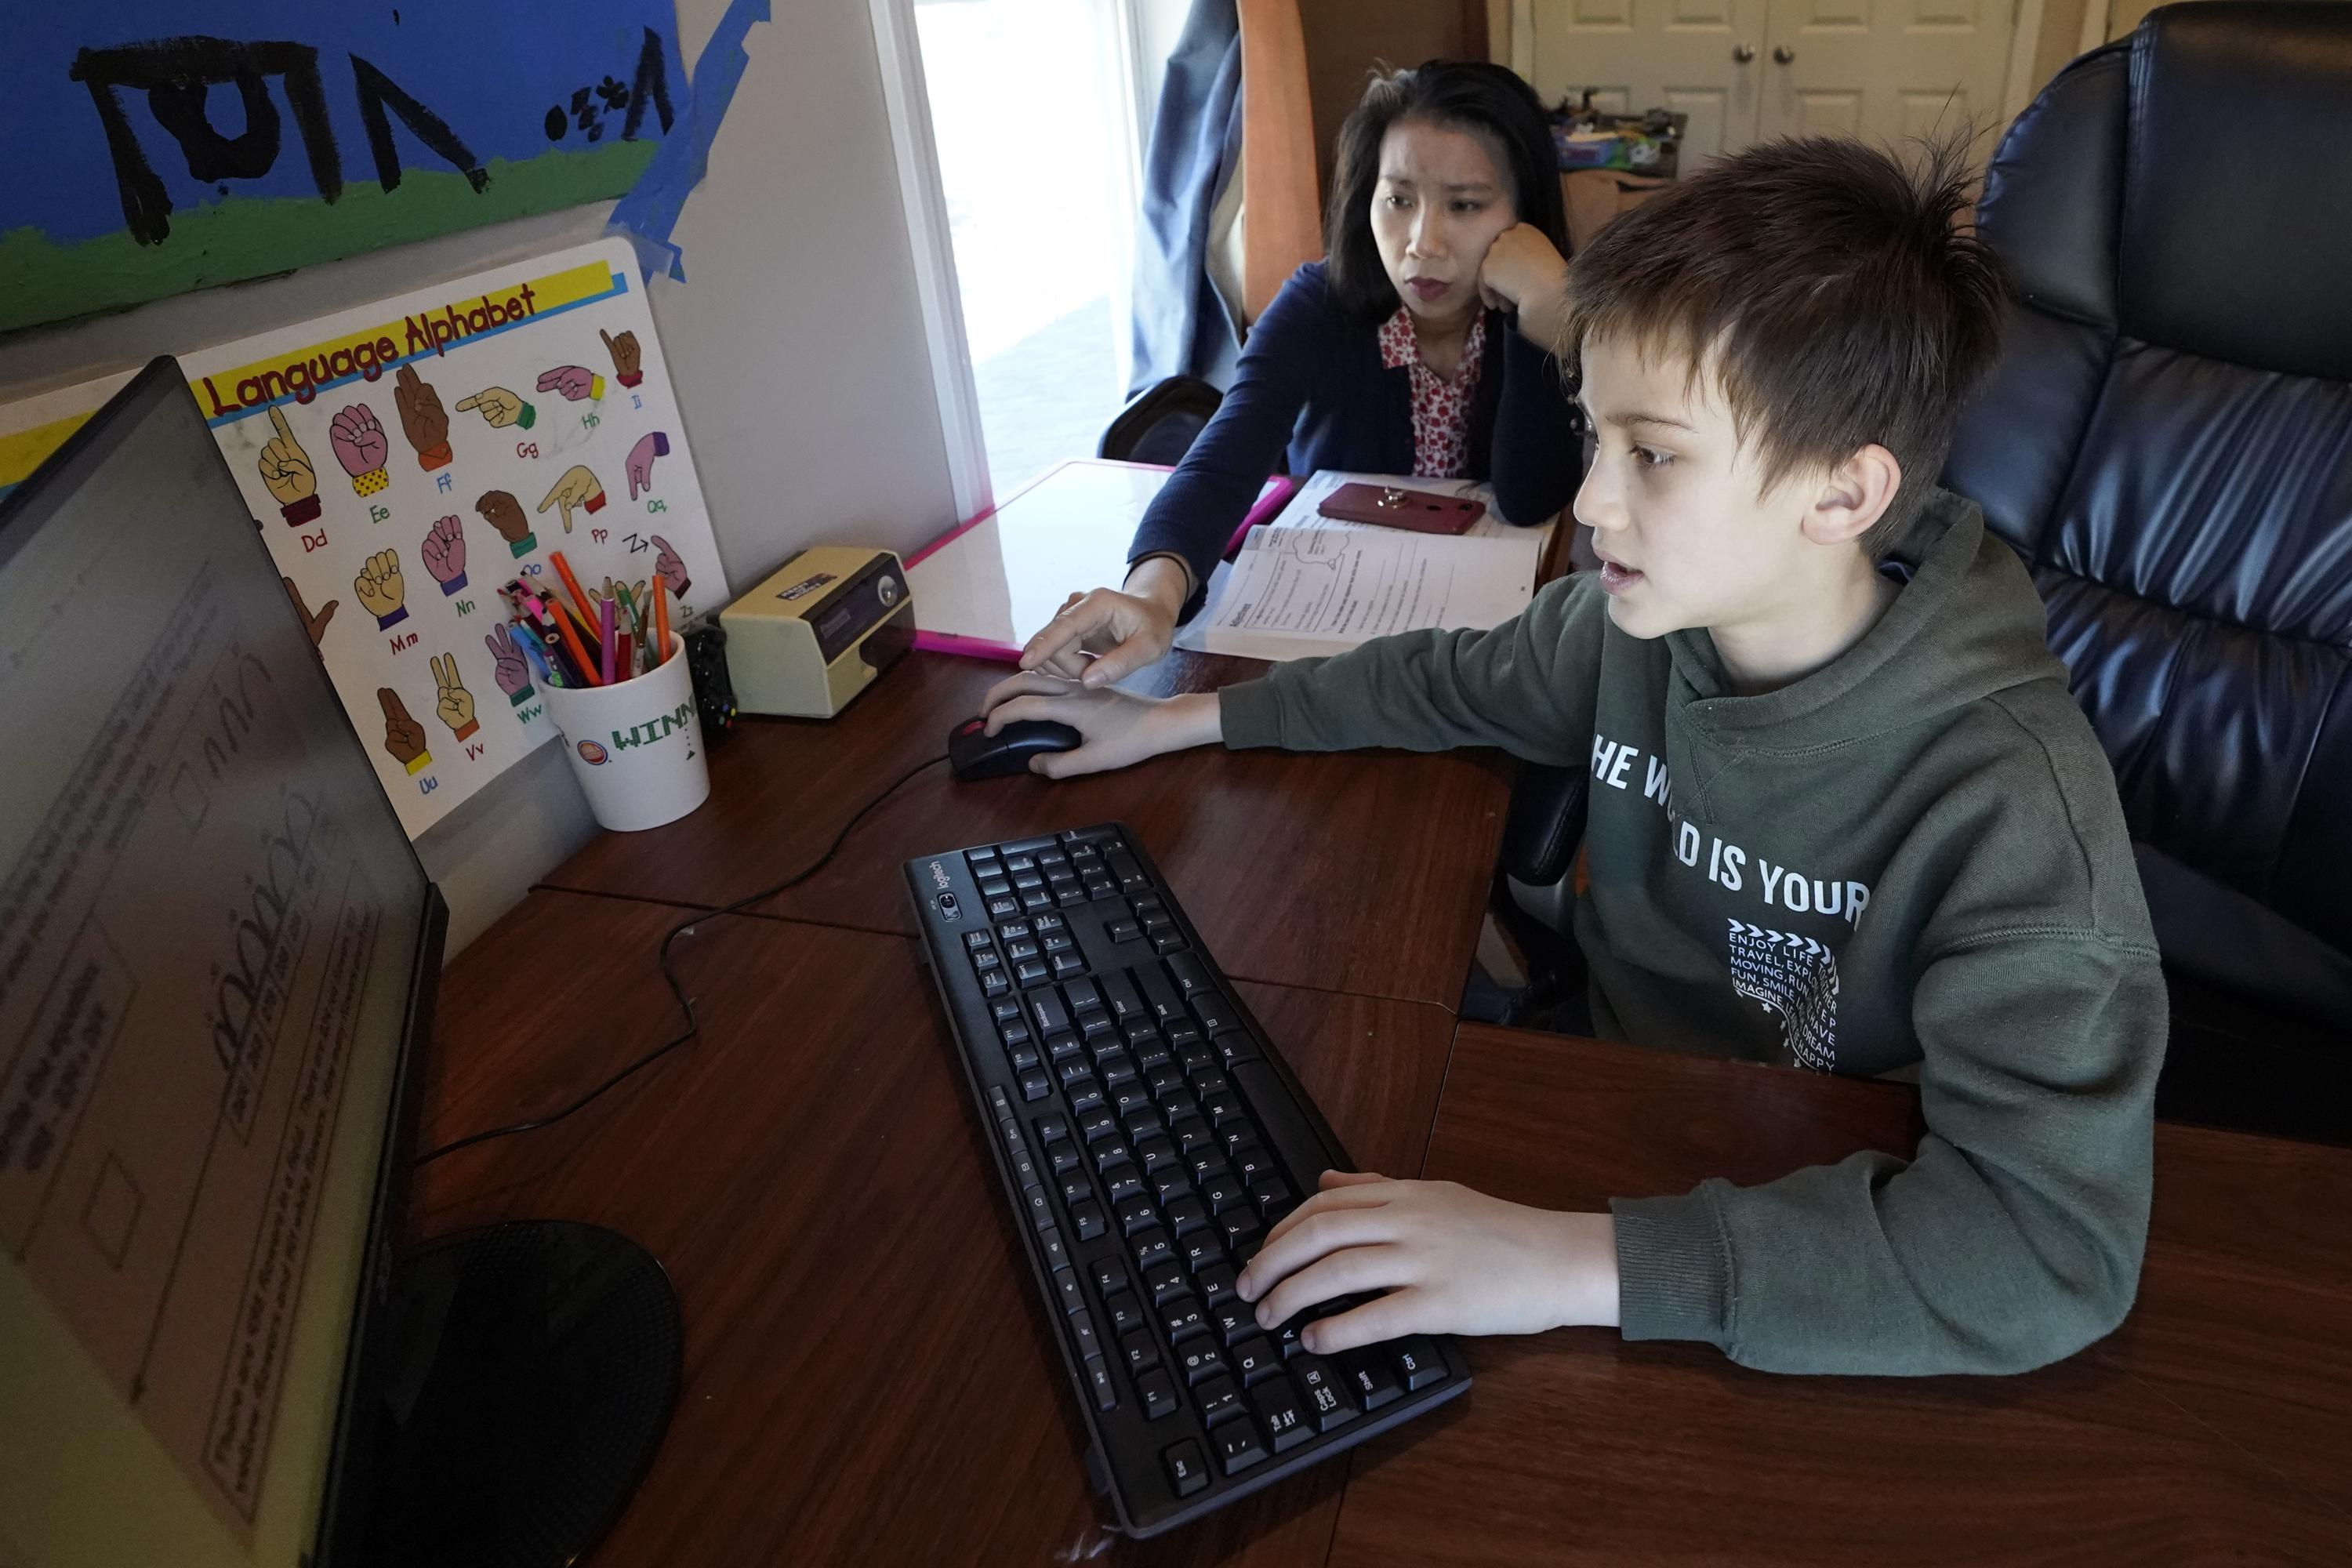 apnews.com: Asian Americans wary about school amid virus, violence